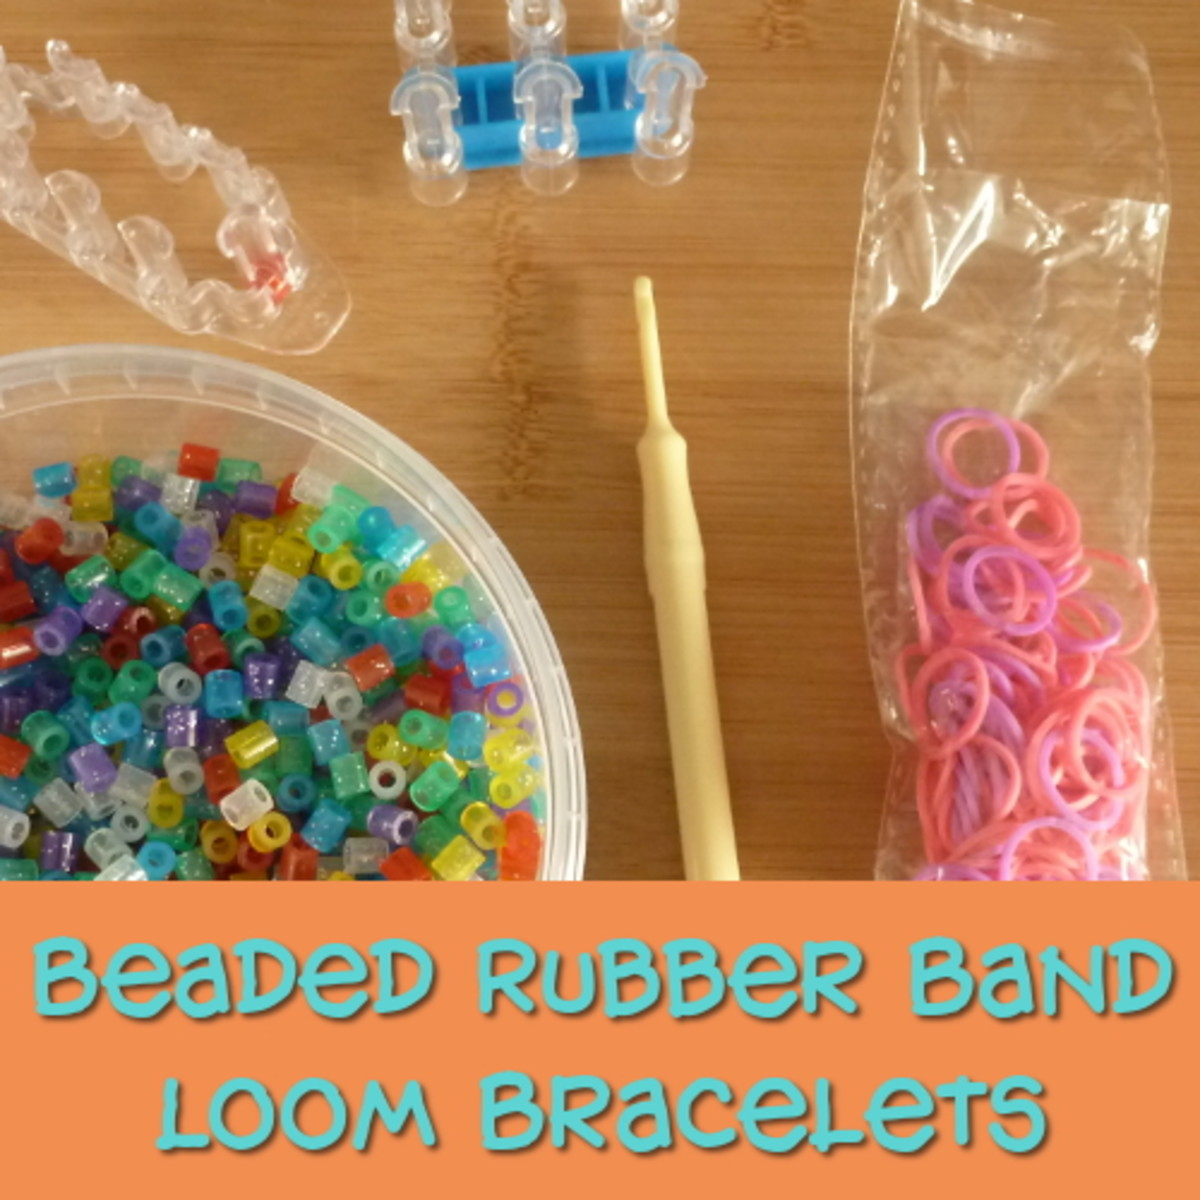 Beaded Rubber Band Loom Bracelets